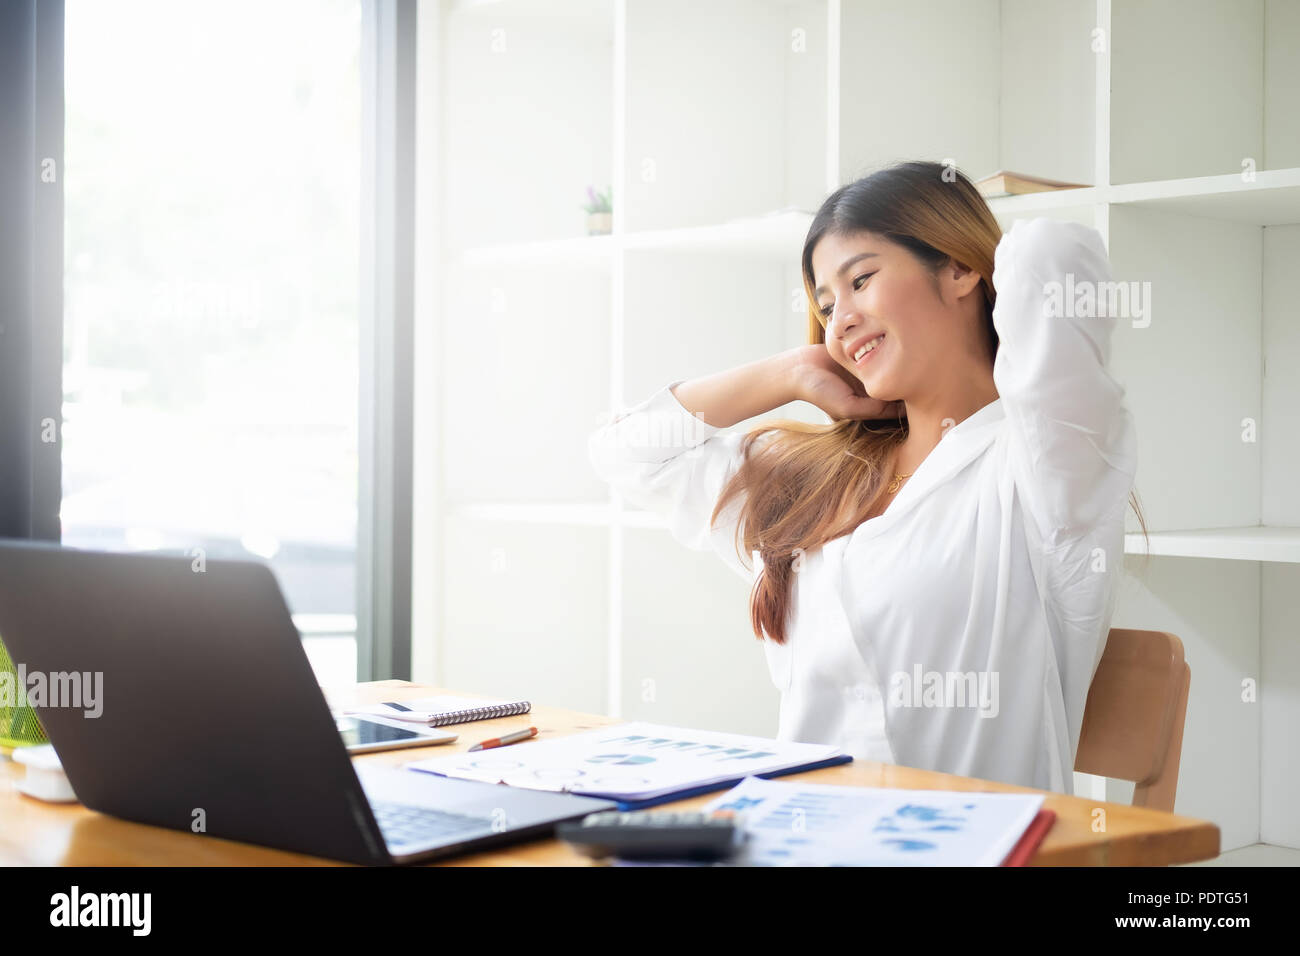 Businesswoman relaxing at comfortable in office hands behind head, happy woman resting in office satisfied after work. - Stock Image